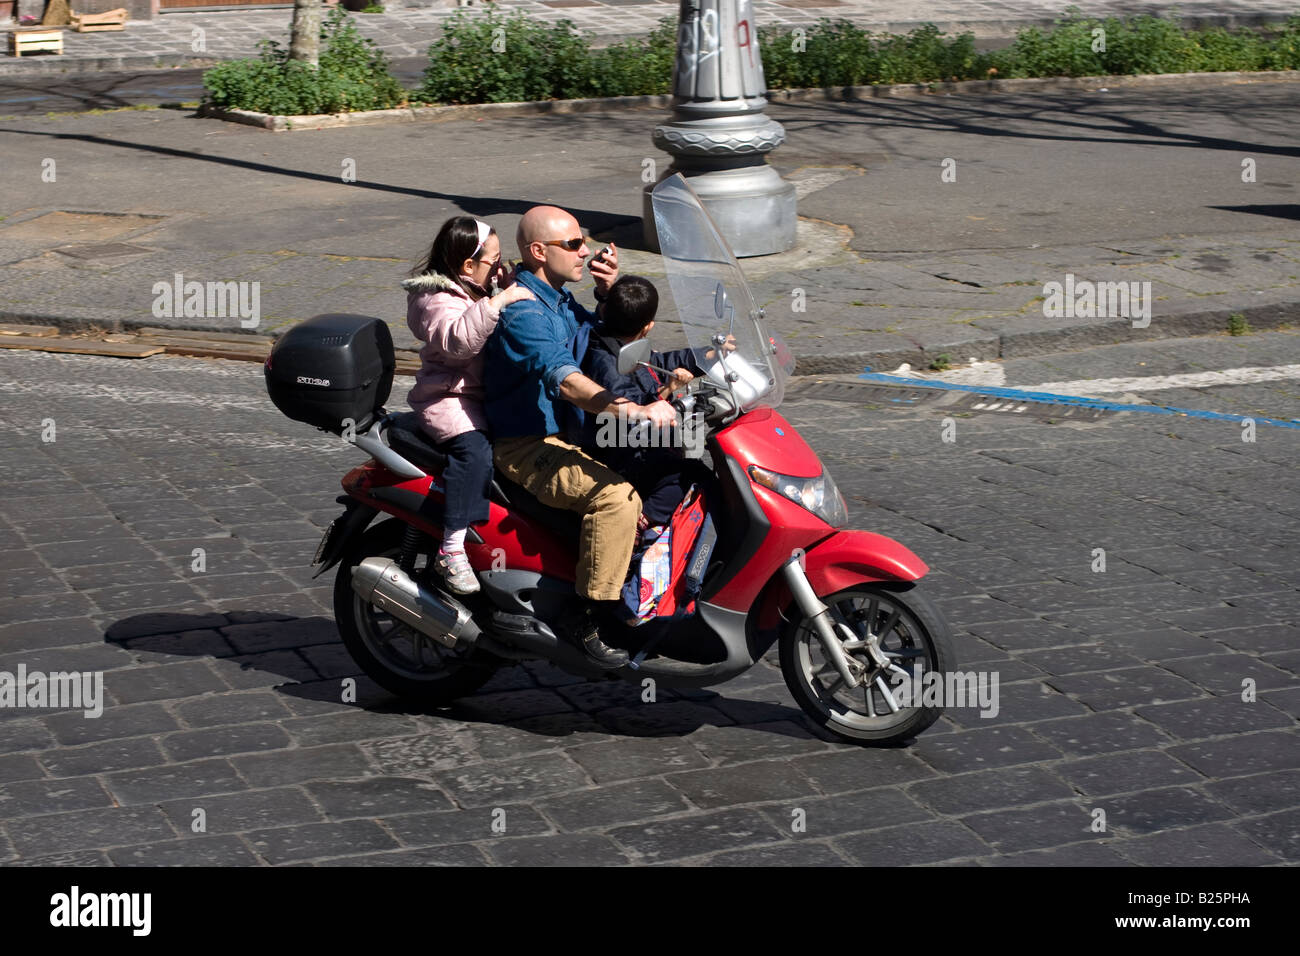 Man rides motorbike with his children and talks on mobile phone in Catania, Sicily, Italy - Stock Image